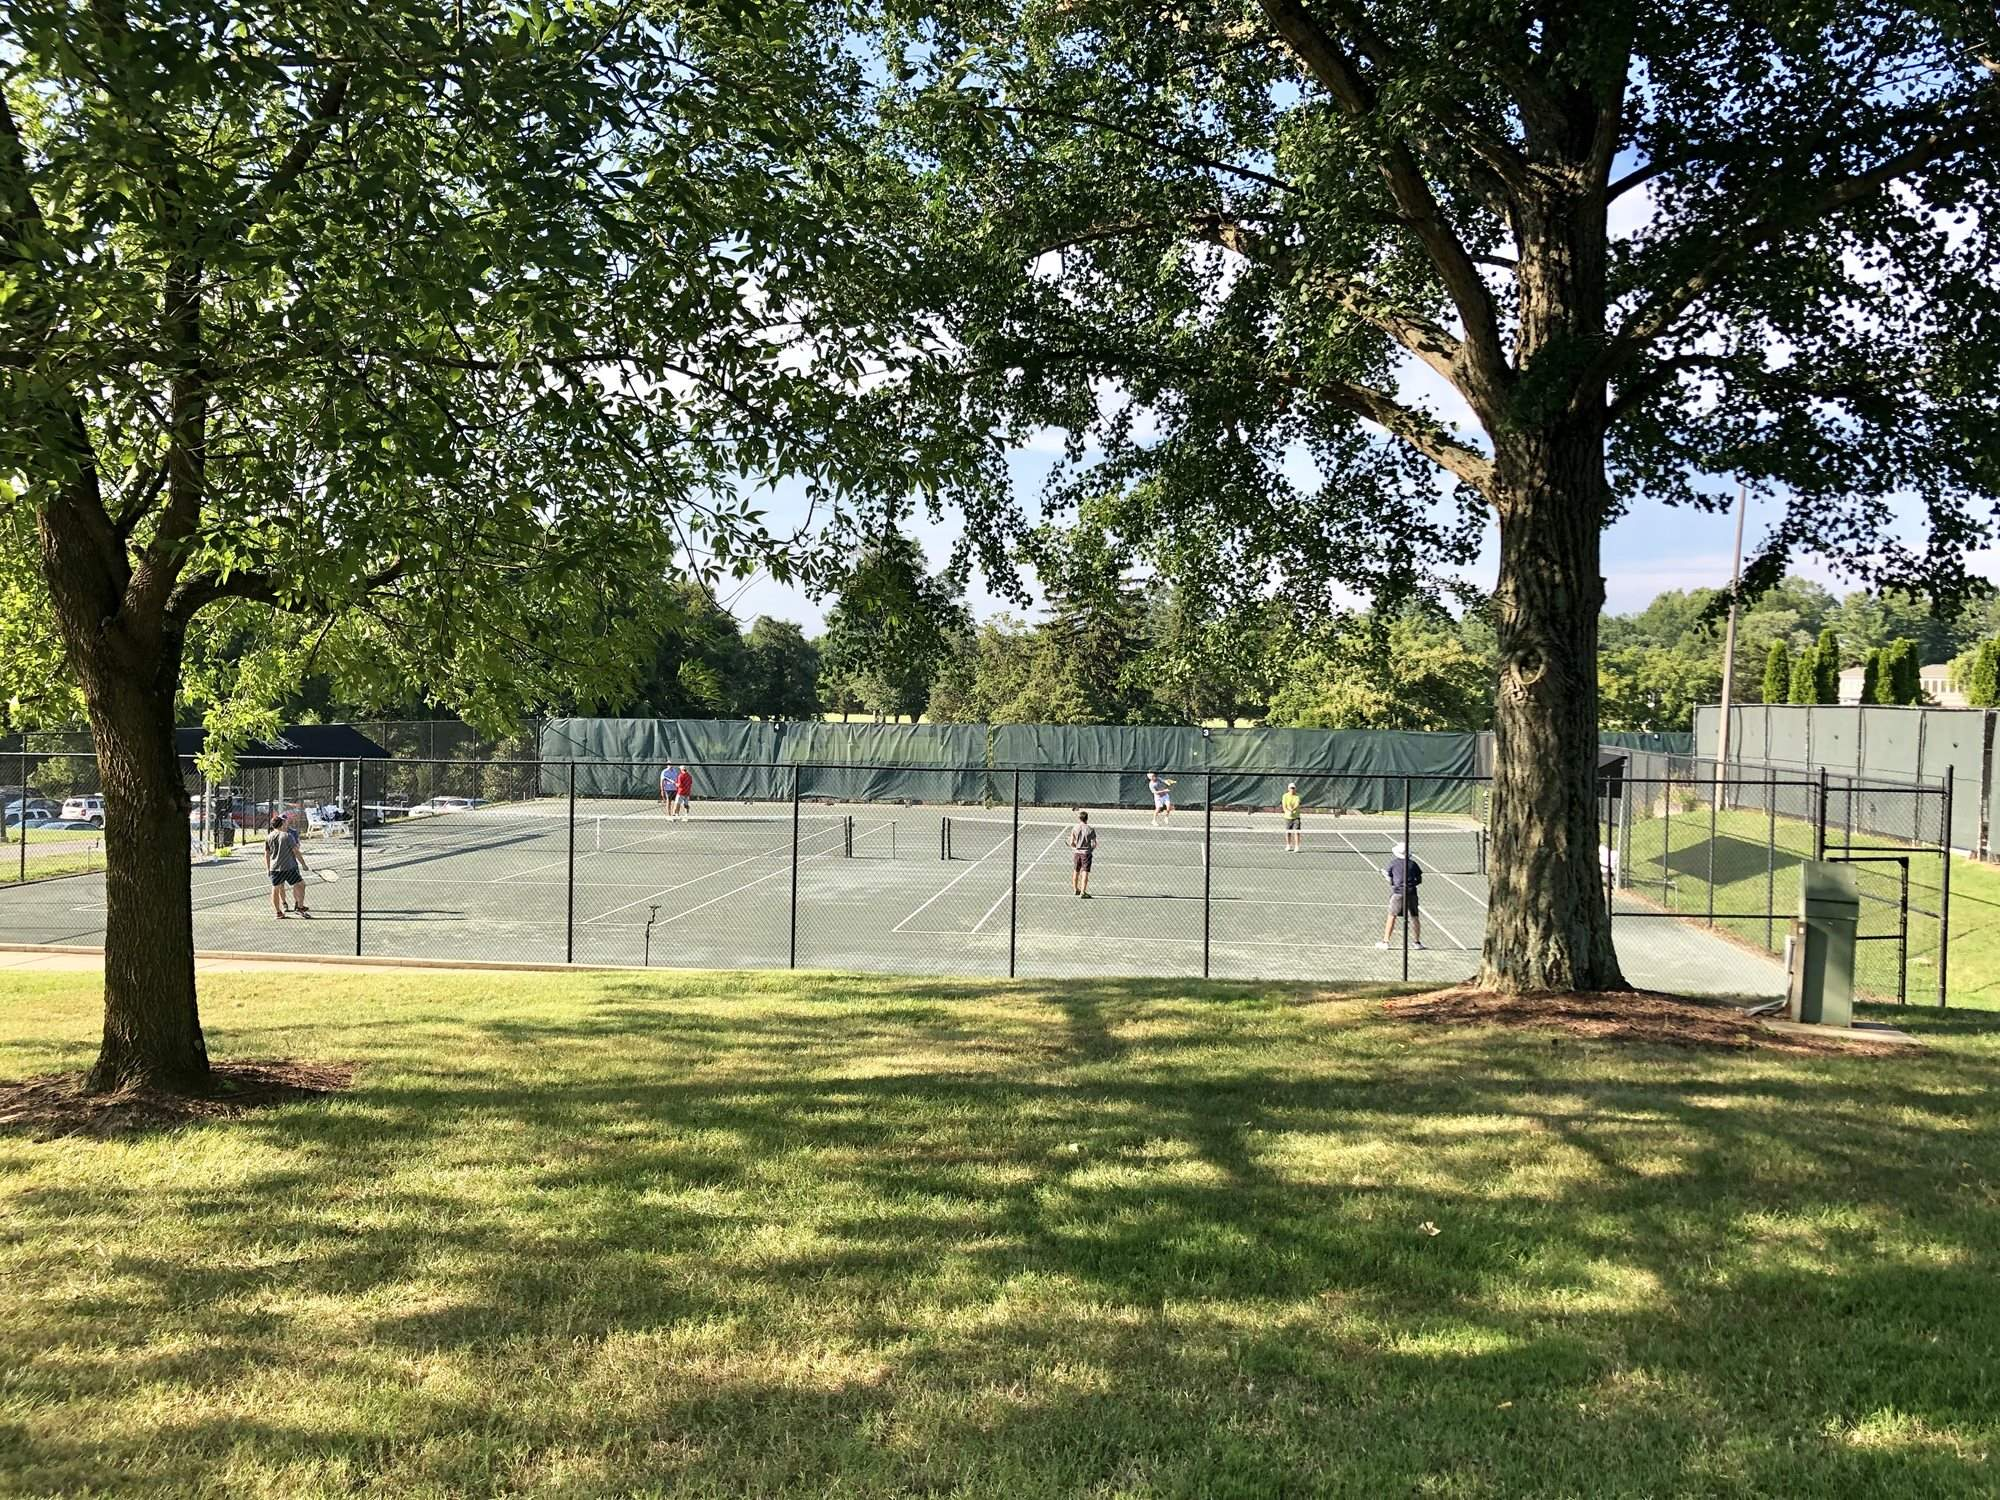 Tennis_behind_trees